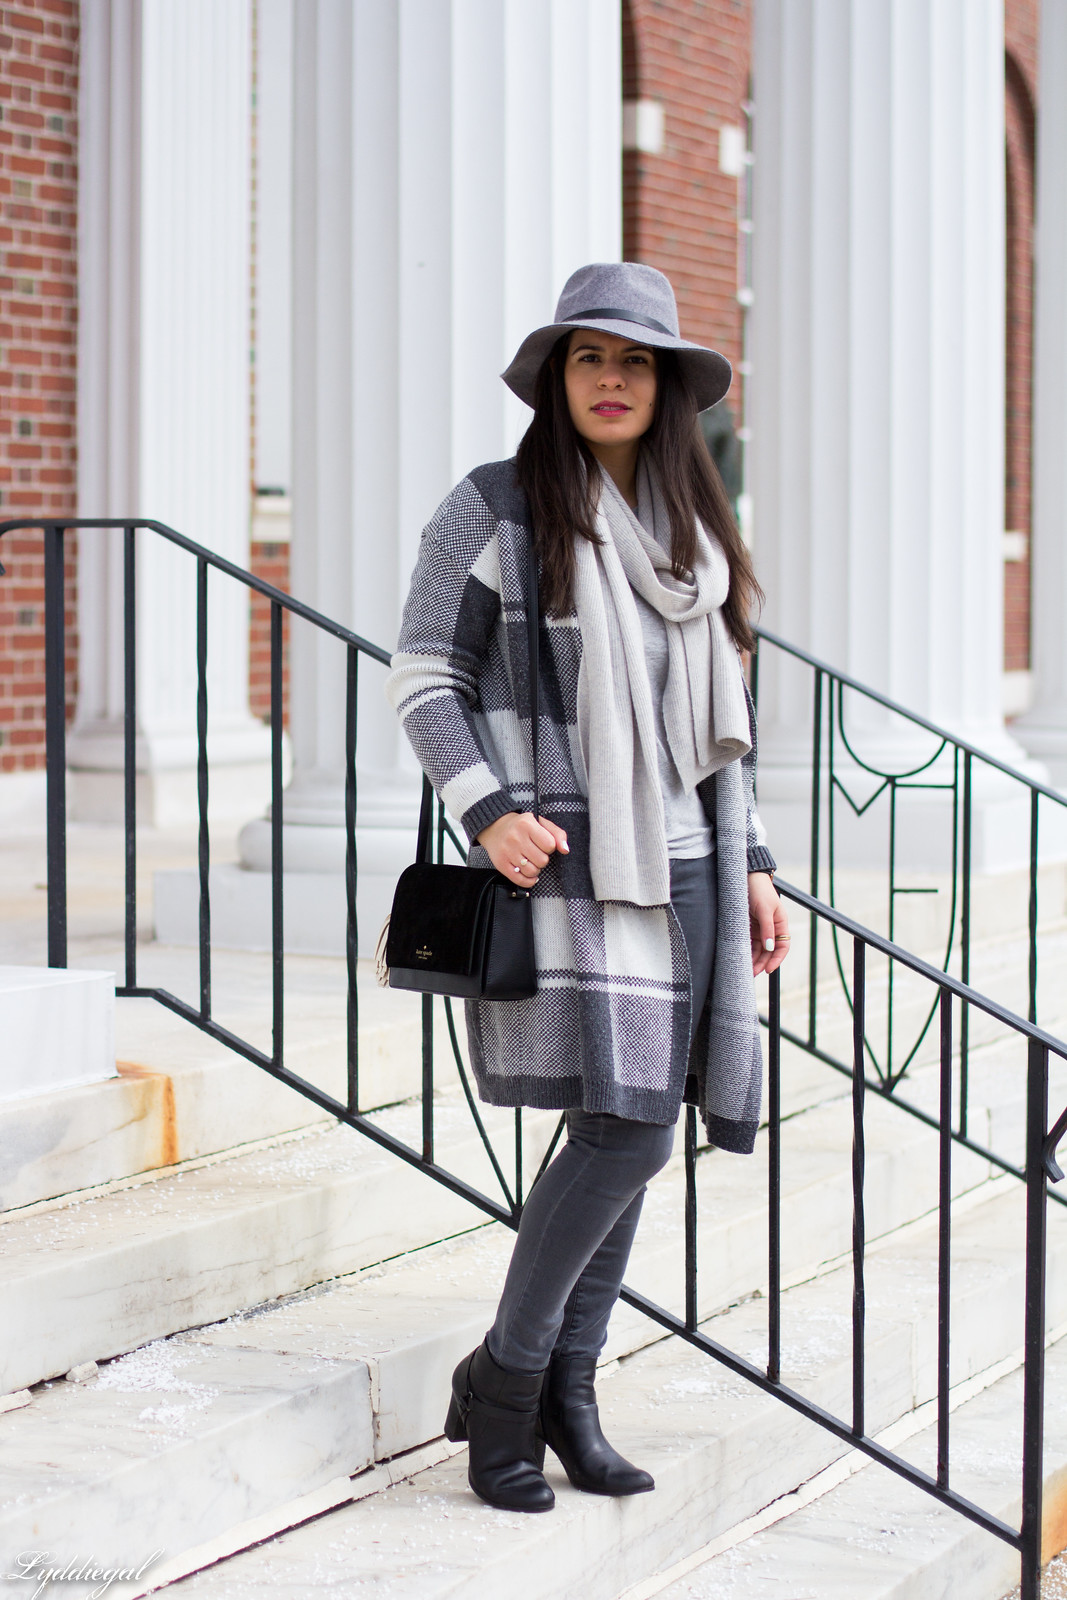 grey plaid cardigan, cashmere scarf, wool hat, grey jeans-1.jpg